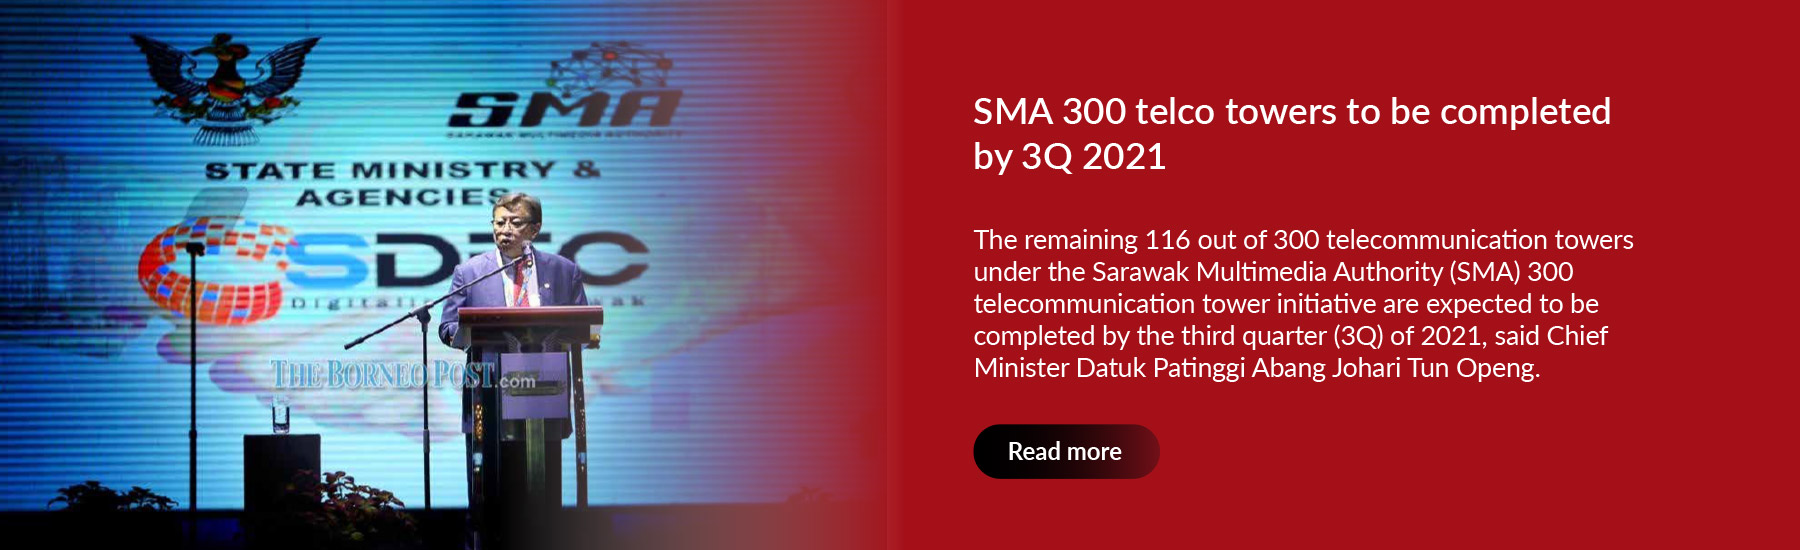 SMA 300 telco towers to be completed by 3Q 2021